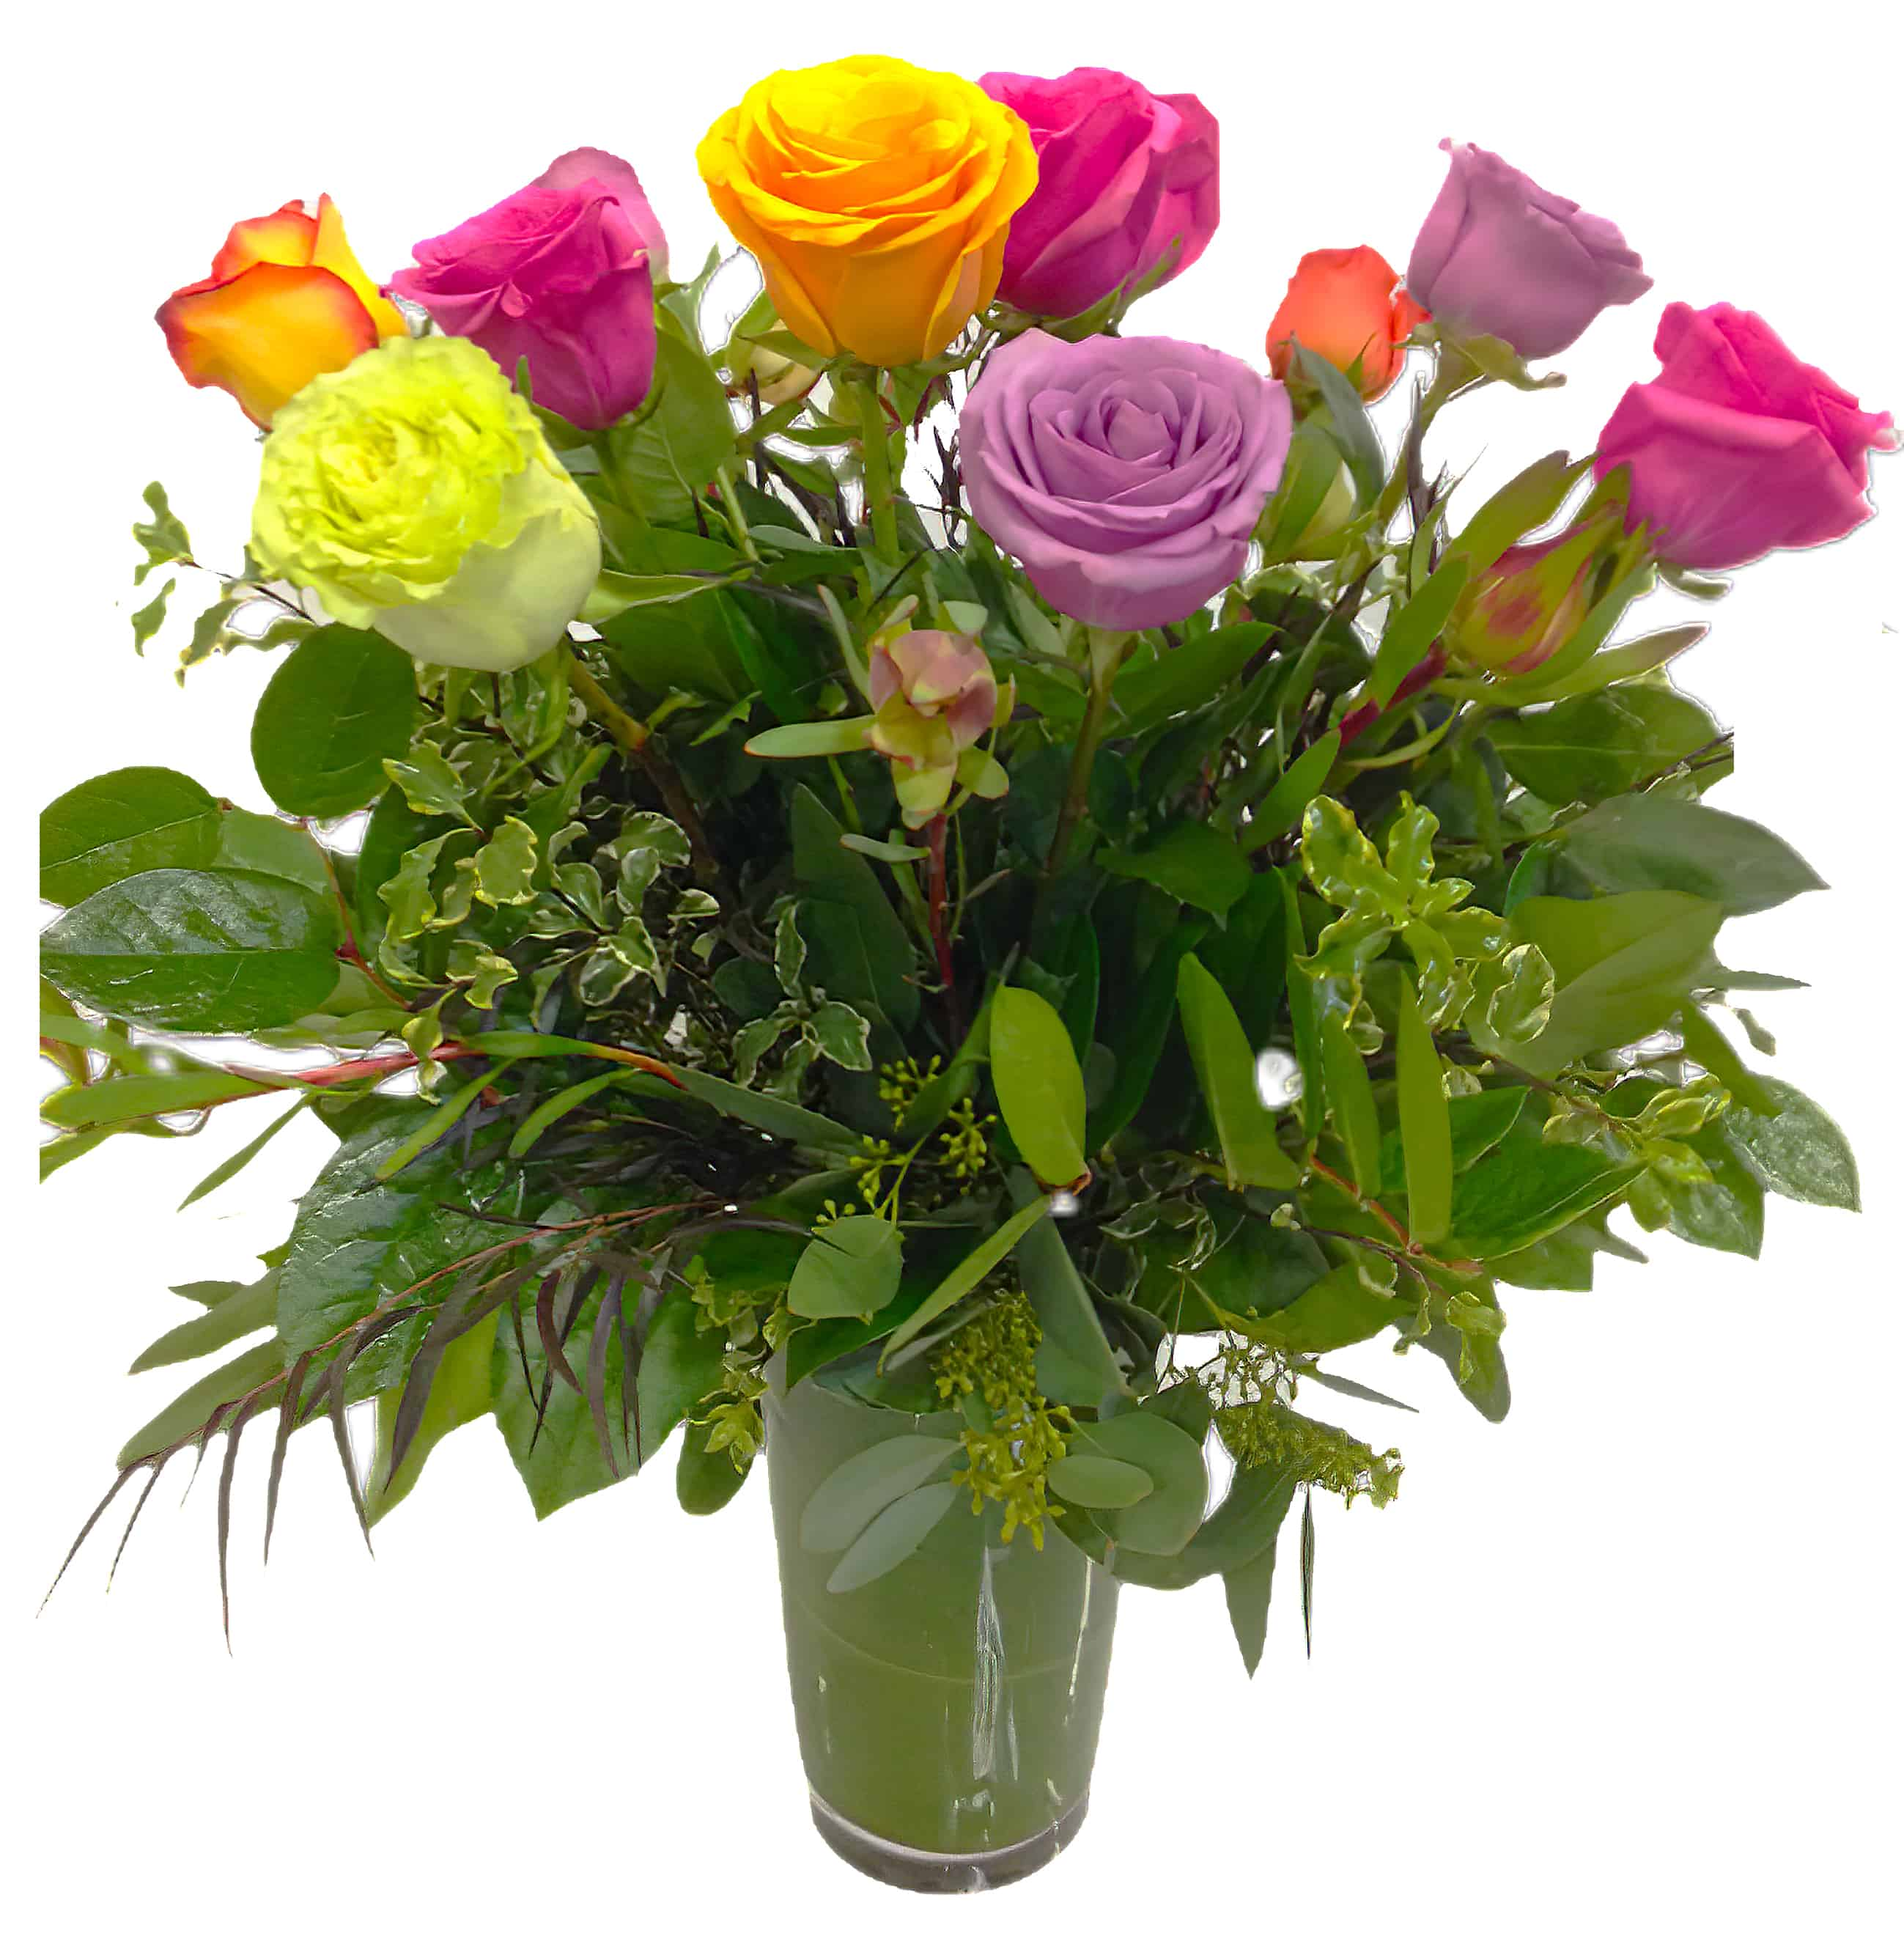 1 Dozen Mixed Colored Roses